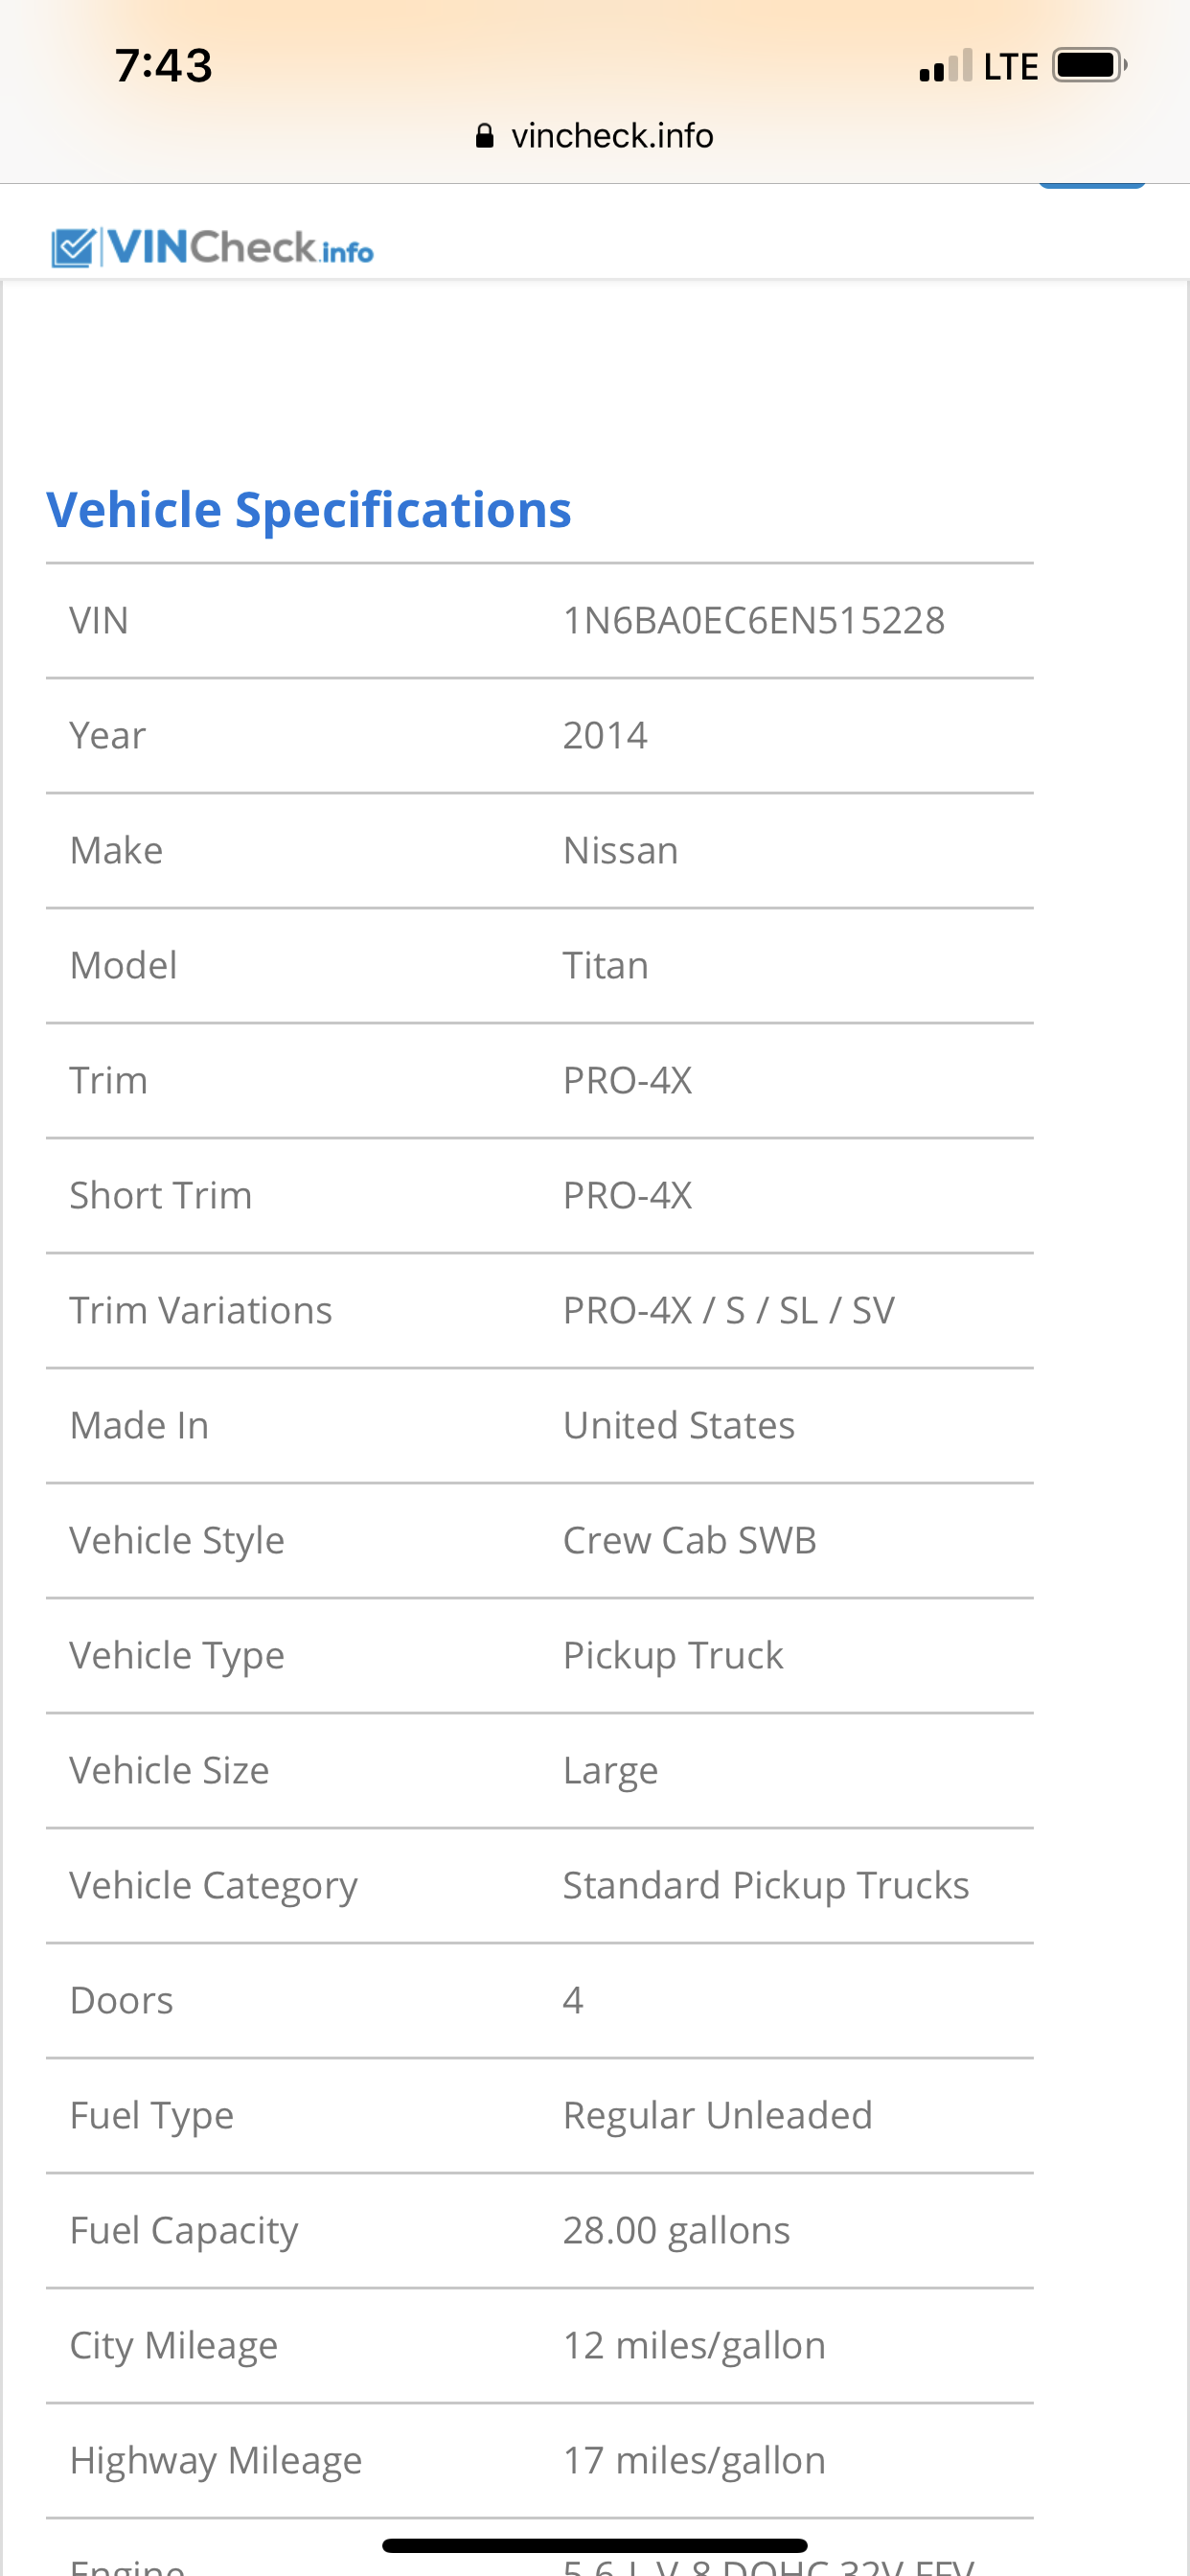 2014 Nissan Titan Pro4X - 73,000miles-7578af5b-017f-4a66-b7a5-e98db697eefb_1555501466729.png